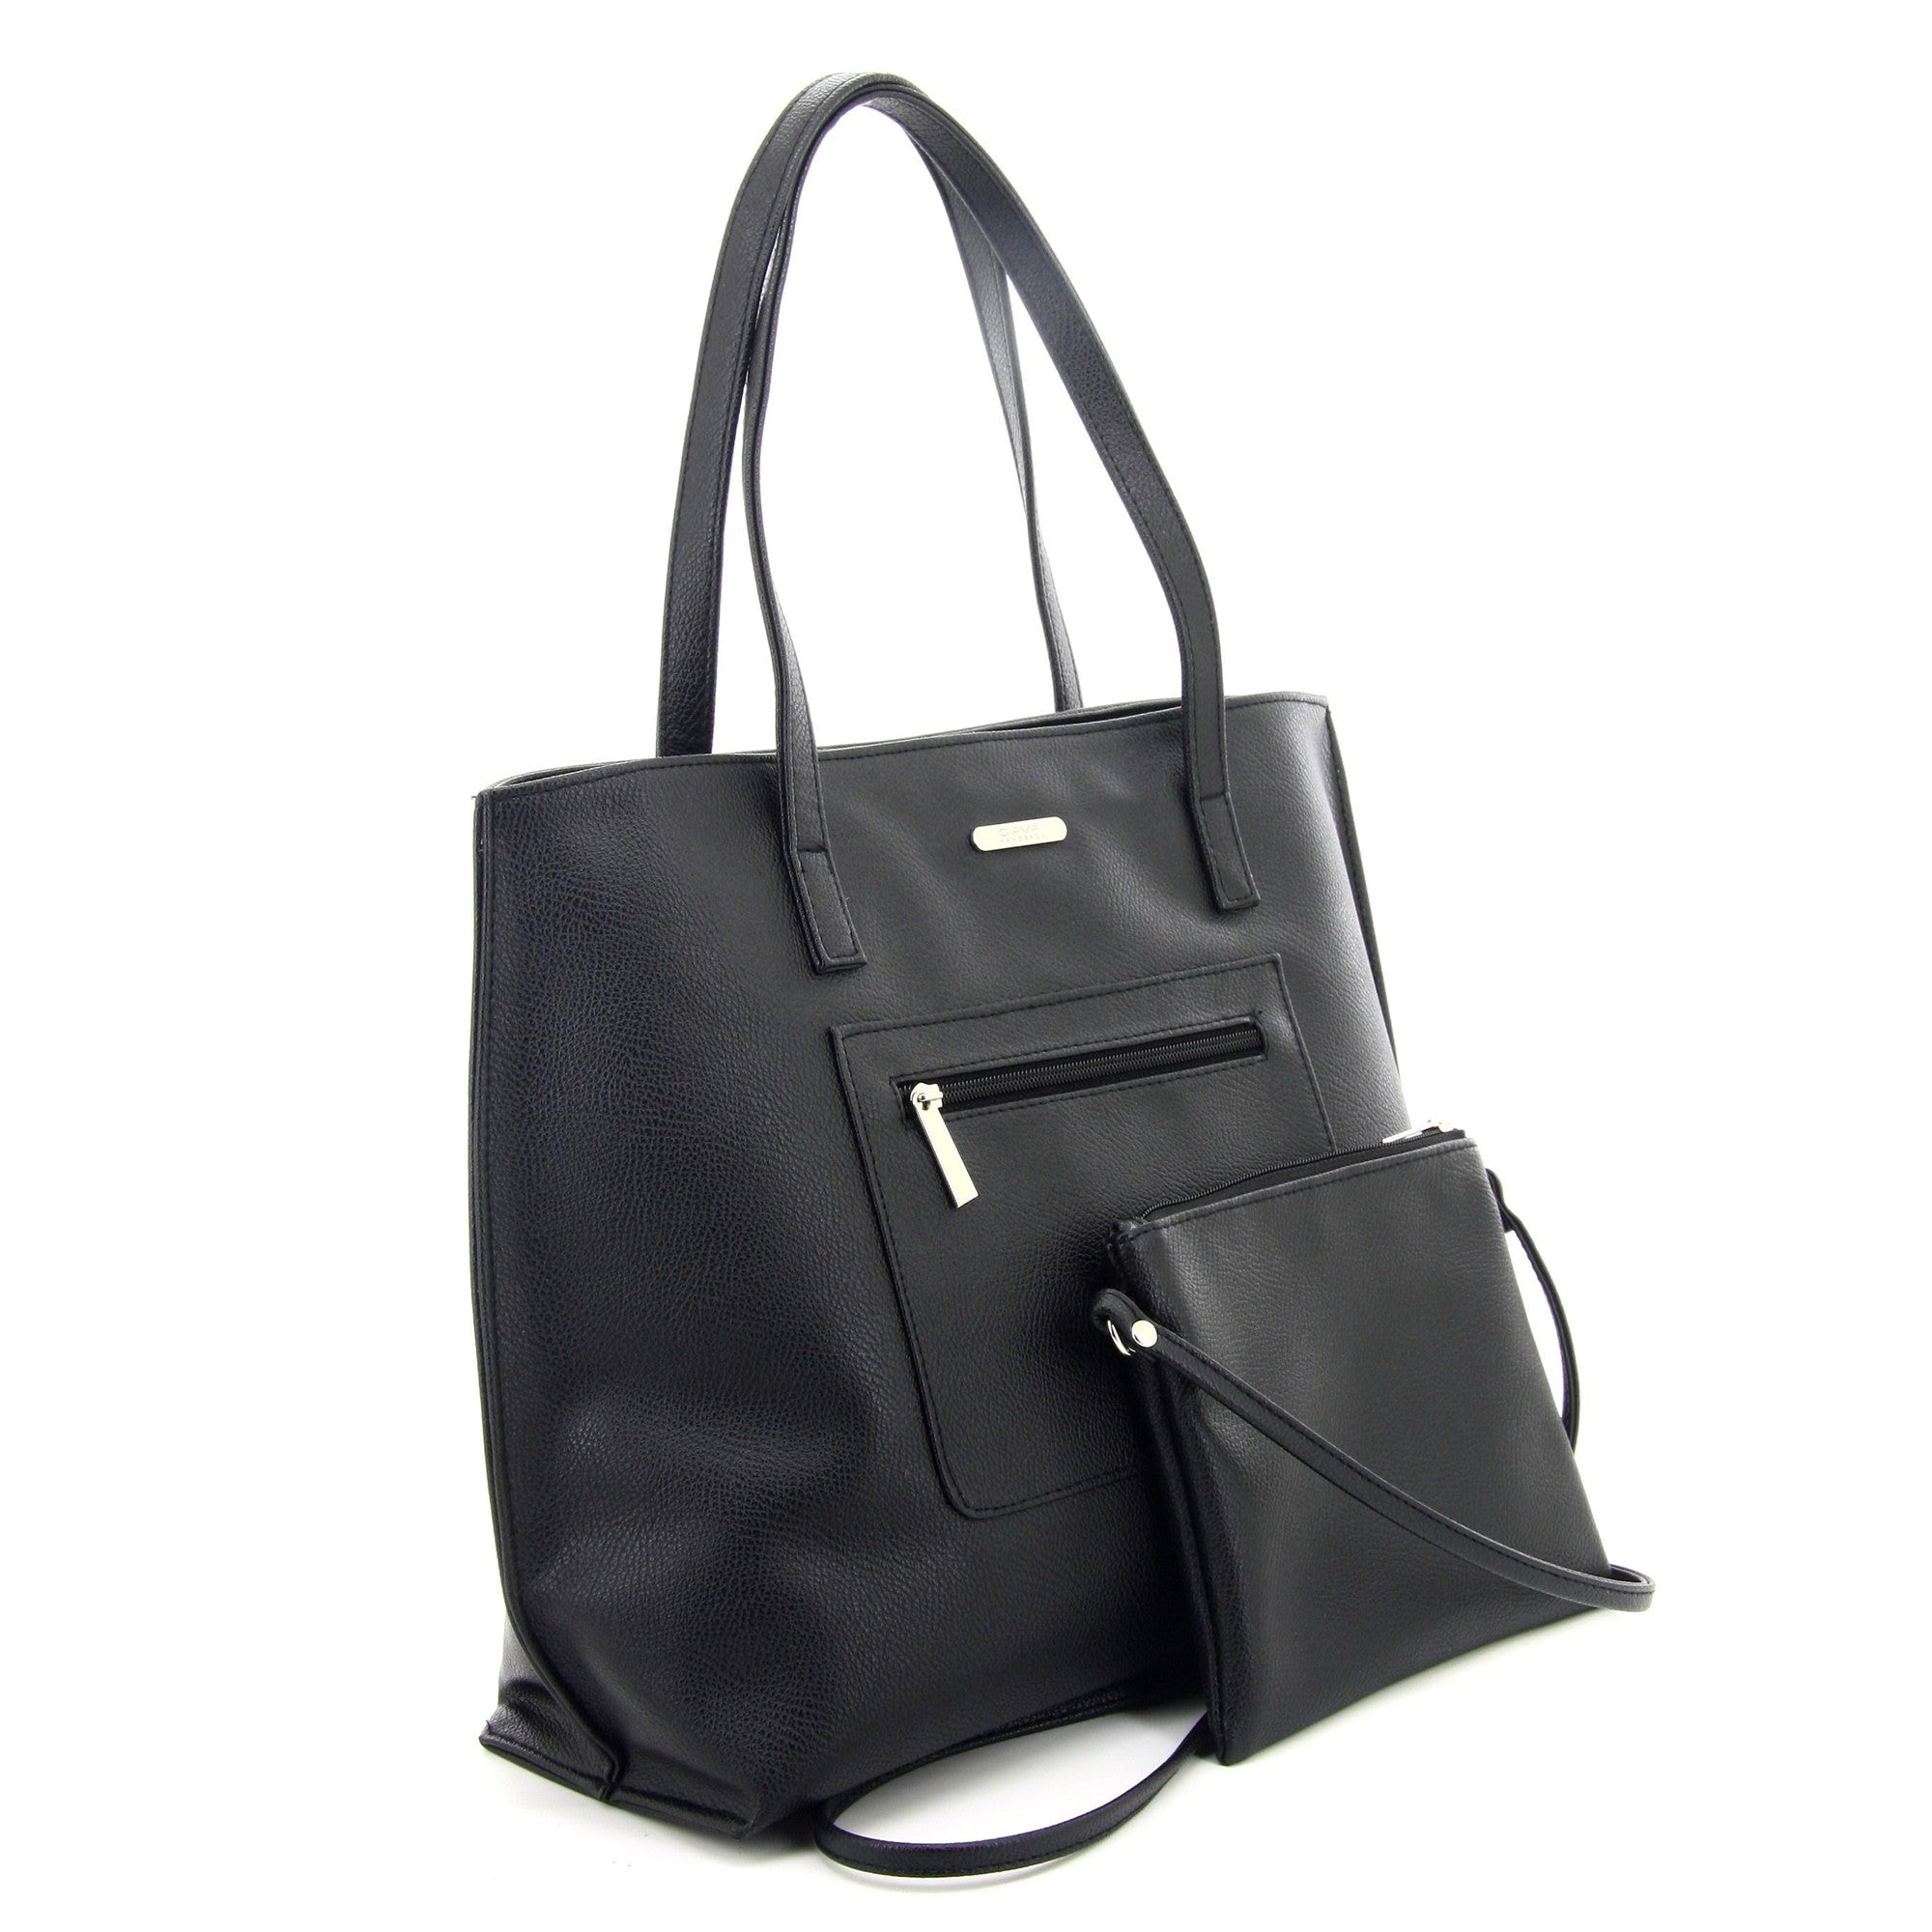 C17FE744BK 2-IN-1 TOTE BAG AND SLING (Black)